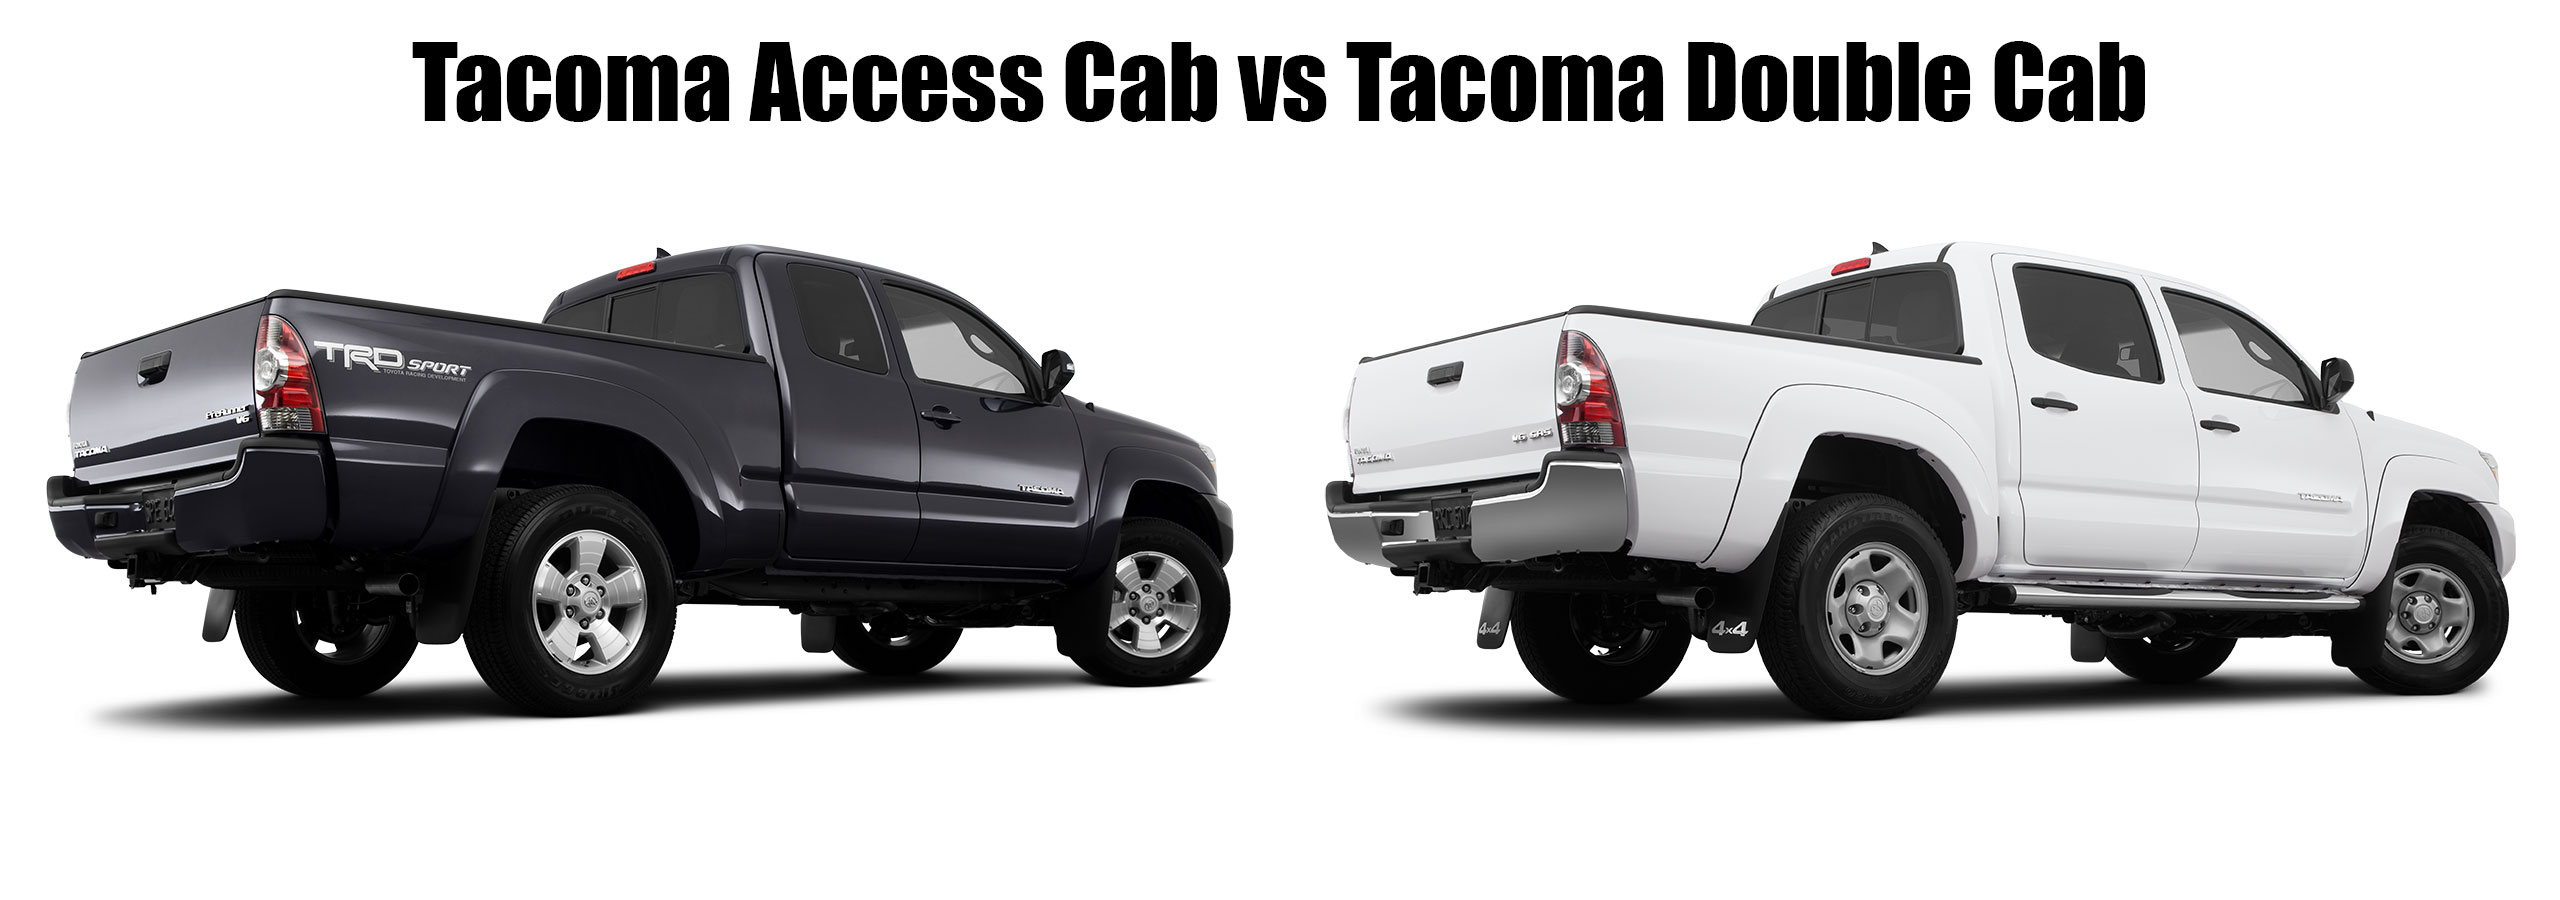 tacoma access cab vs tacoma double cab limbaugh toyota reviews specials and deals. Black Bedroom Furniture Sets. Home Design Ideas